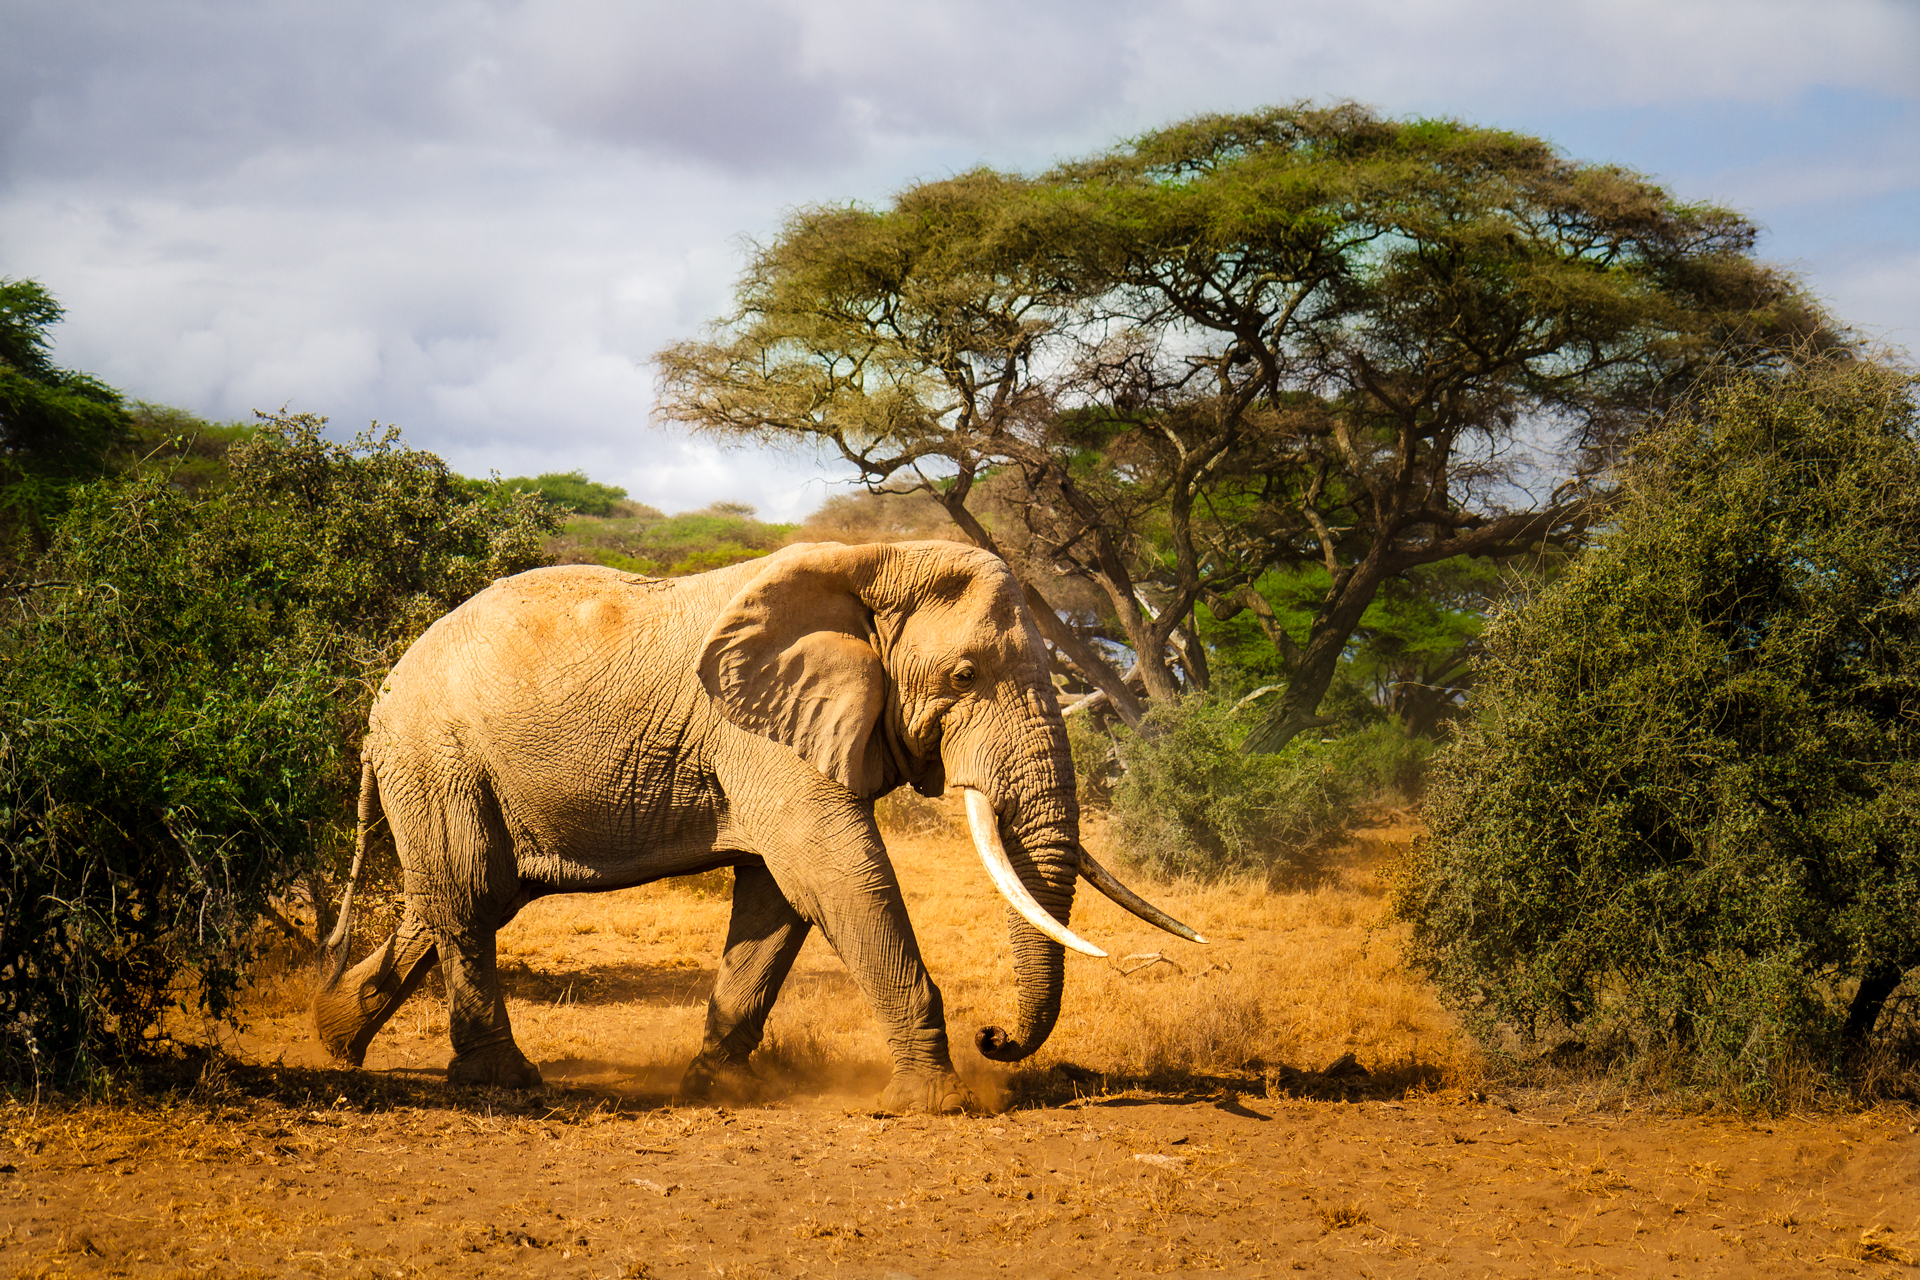 Bull Elephant in Tsavo, Kenya | high gloss metal print | 12x18